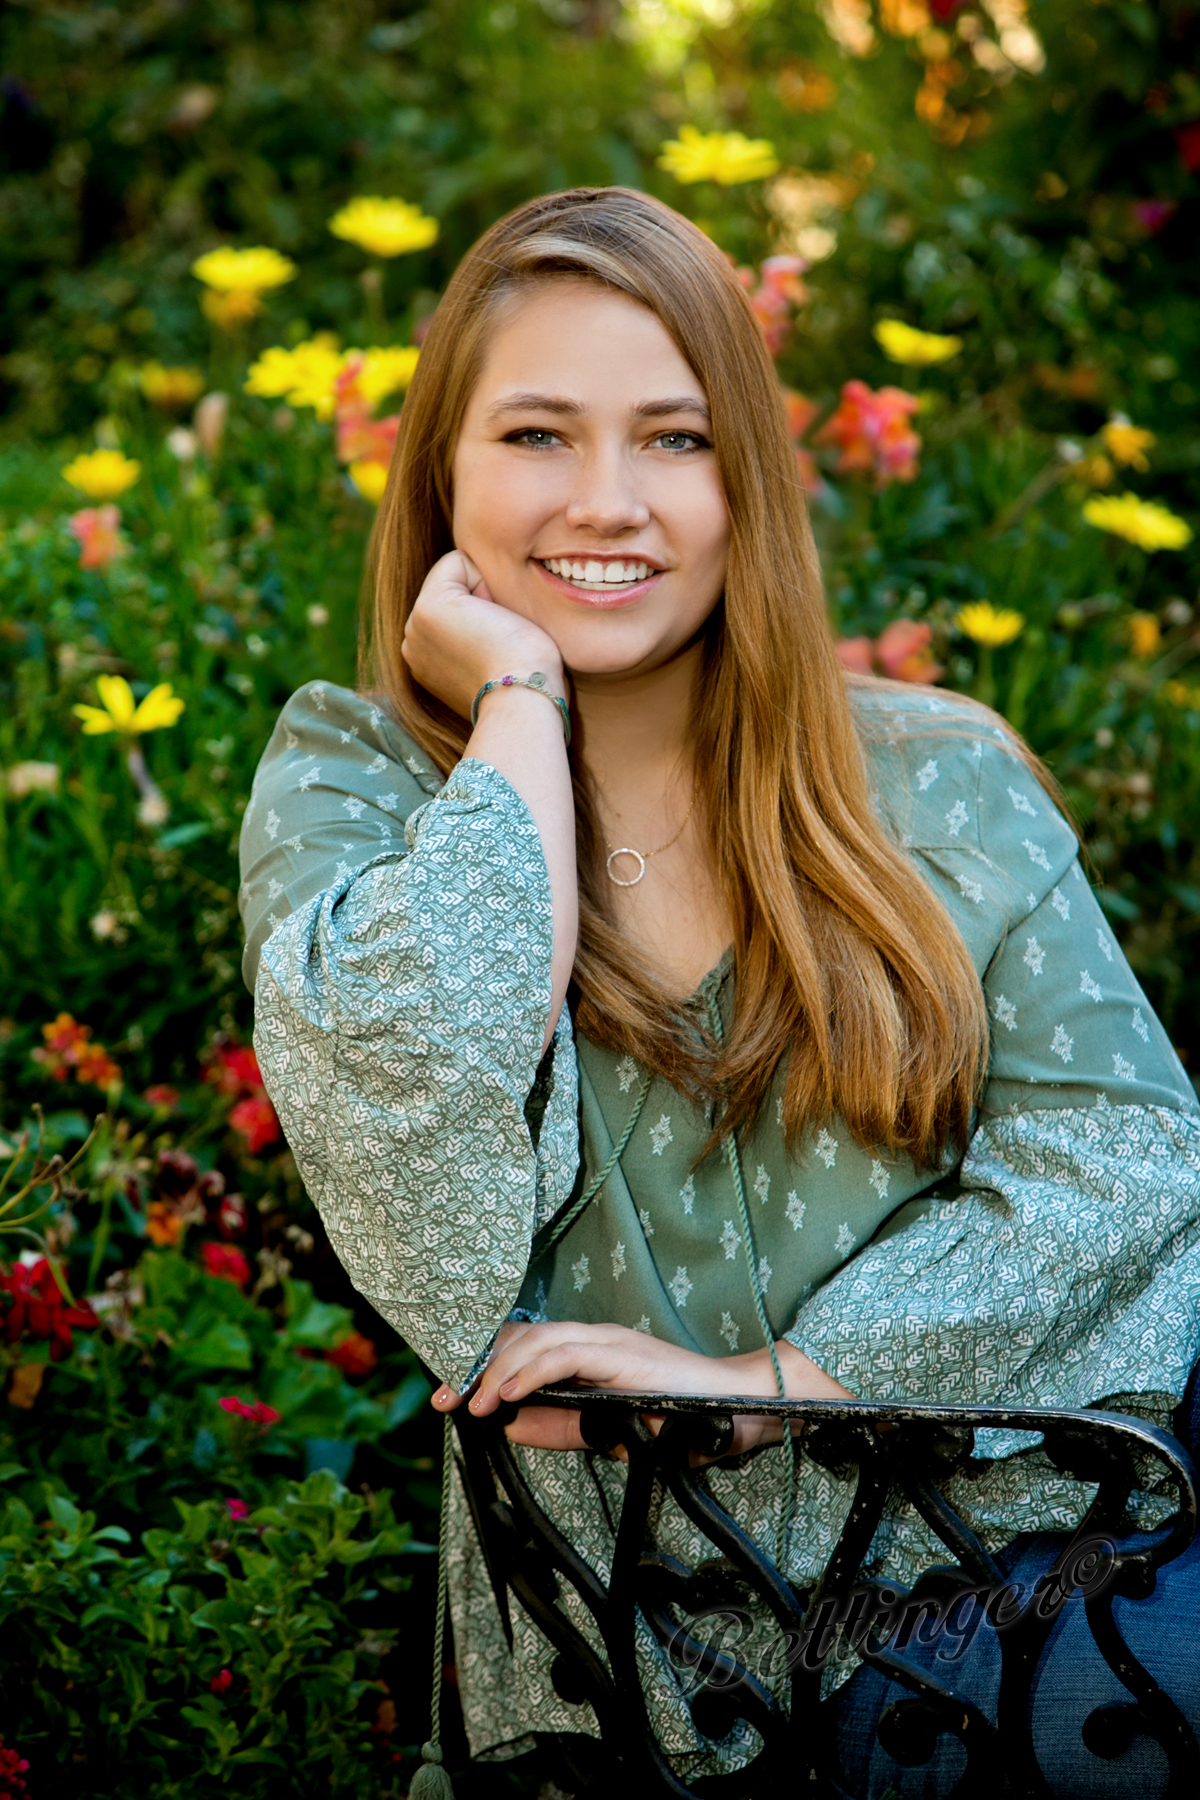 - Katherine is a beautiful and compassionate young woman. She has volunteered at Anchor Center for the Blind, is in the Senior Leadership Club and has made Honor Roll. She wants to be a nurse when she grows up.